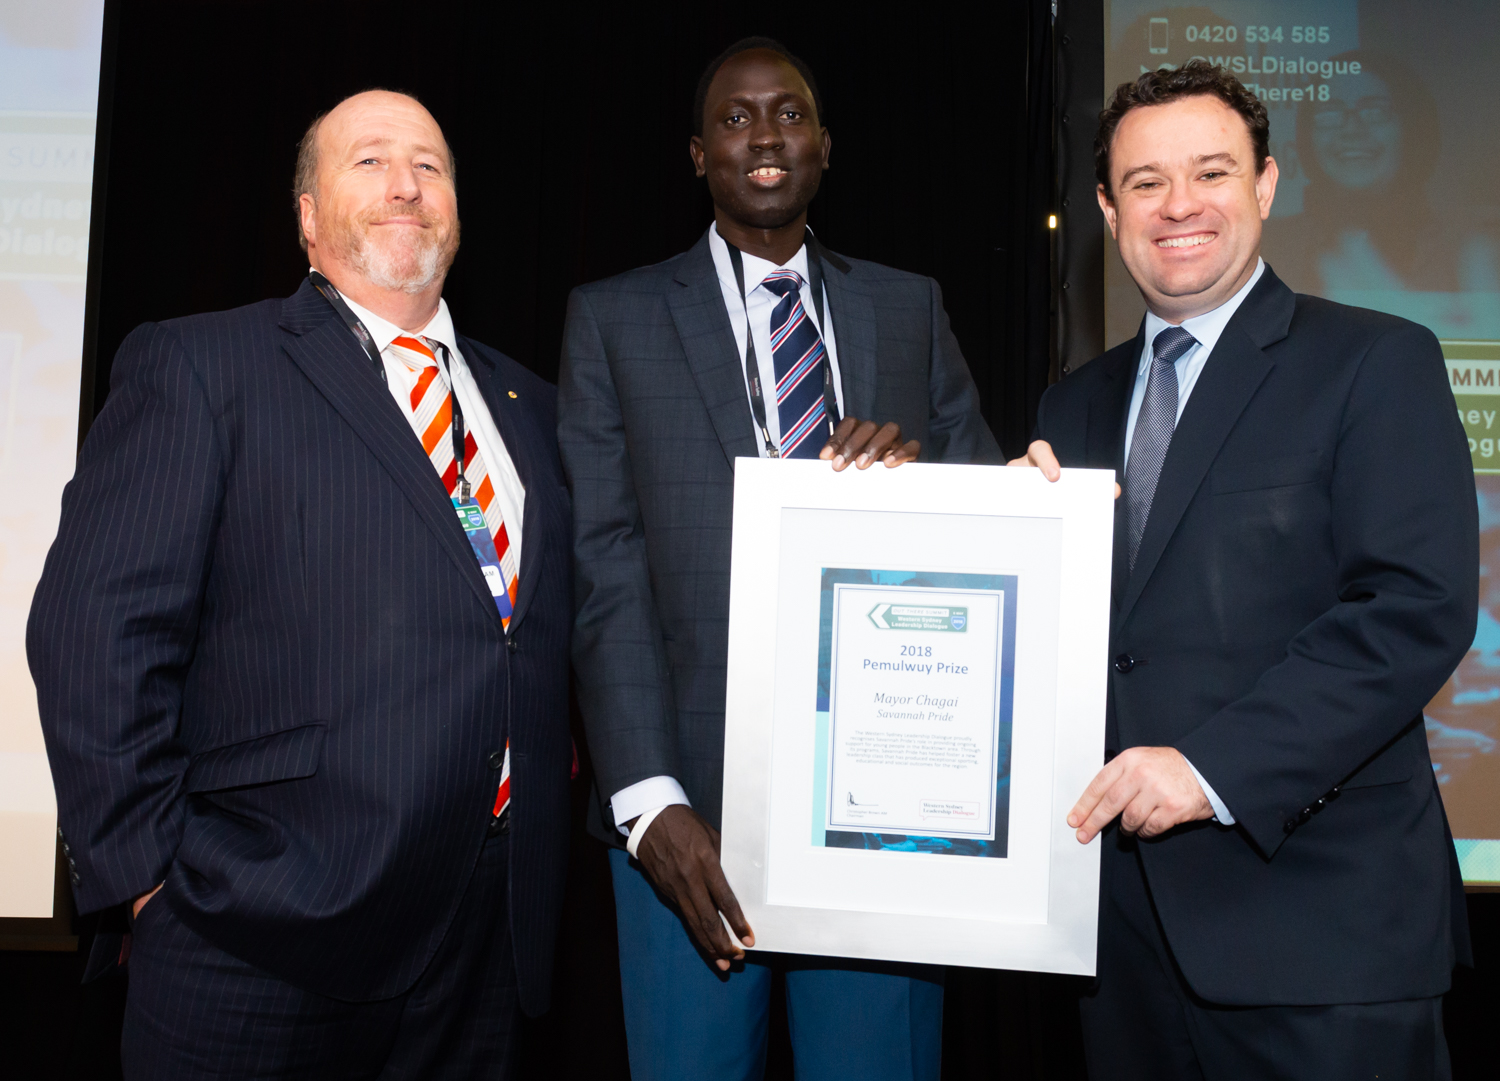 Mayor Chagai presented with the Pemulwuy Prize by Christopher Brown, Chairman of the Dialogue & Stuart Ayres, Minister for Western Sydney